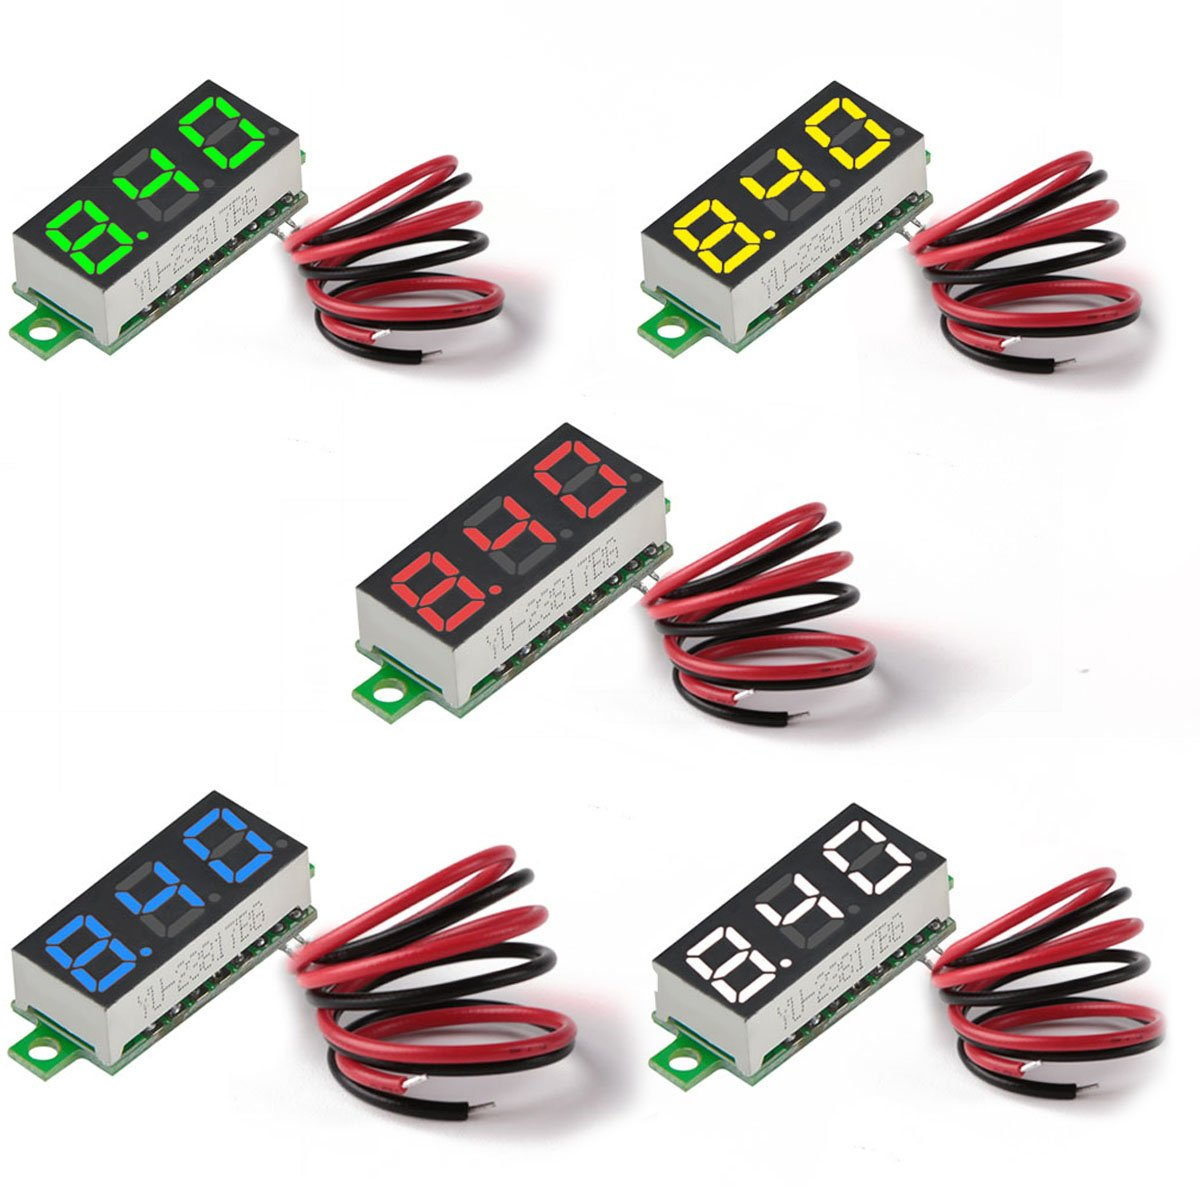 MakerFocus 5pcs Mini Digital DC Voltmeter 0.28 Inch Two-Wire 2.5V-30V Mini Digital DC Voltmeter Voltage Tester Meter 5 Colours